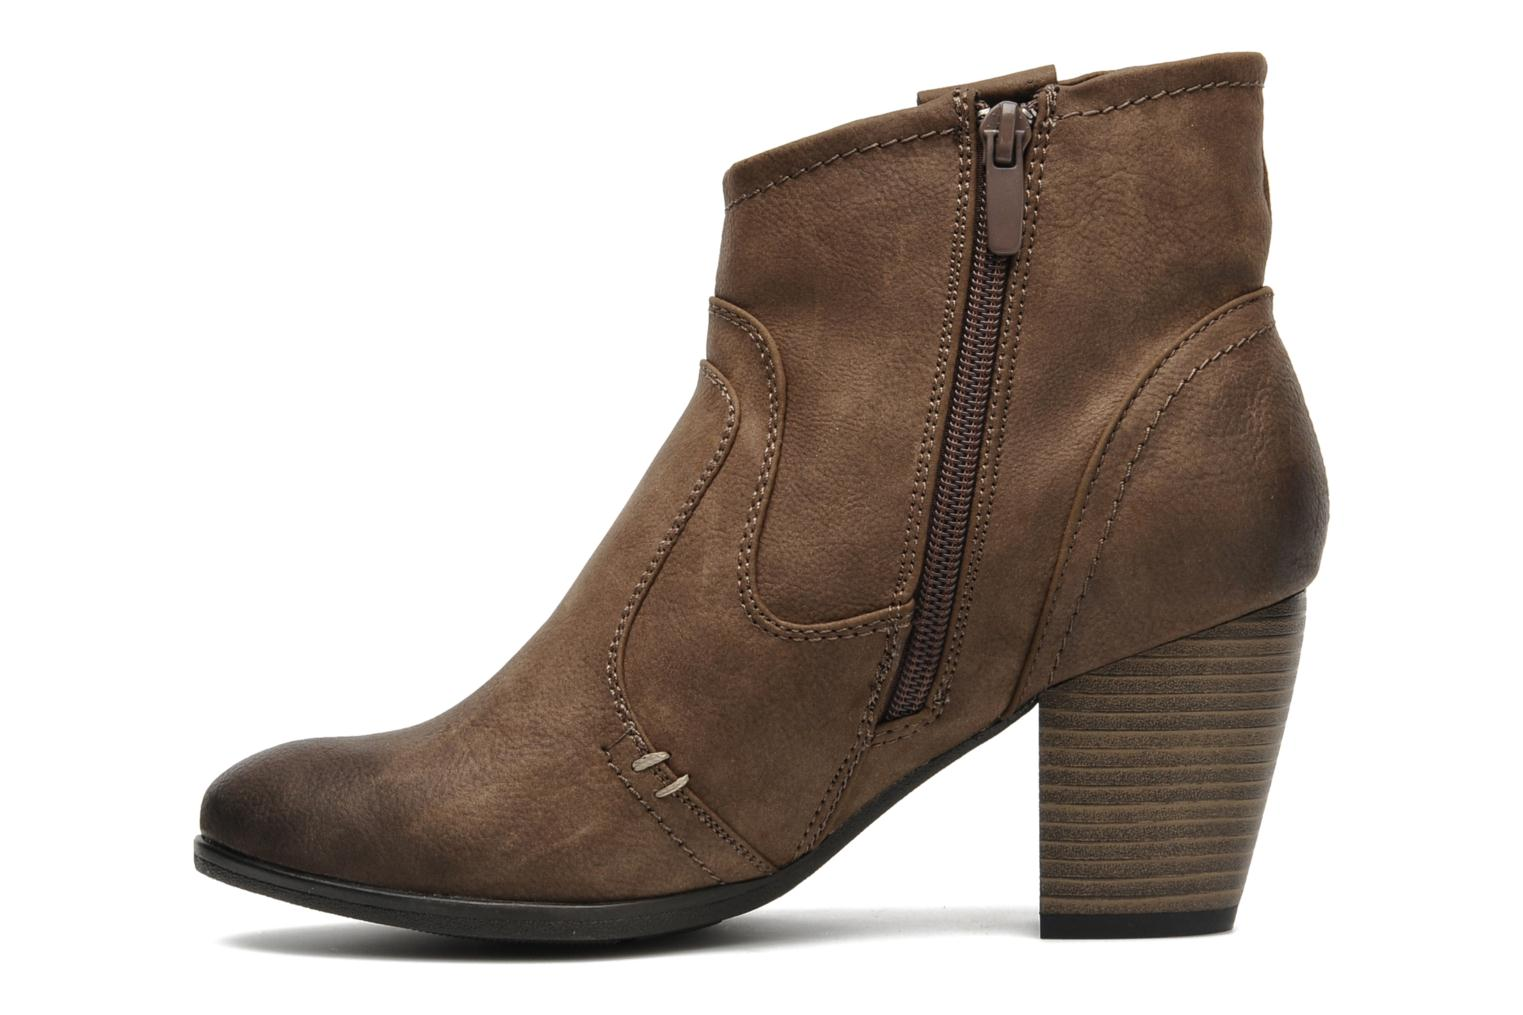 I Love Shoes Samantha Ankle Boots In Brown At Sarenza Co